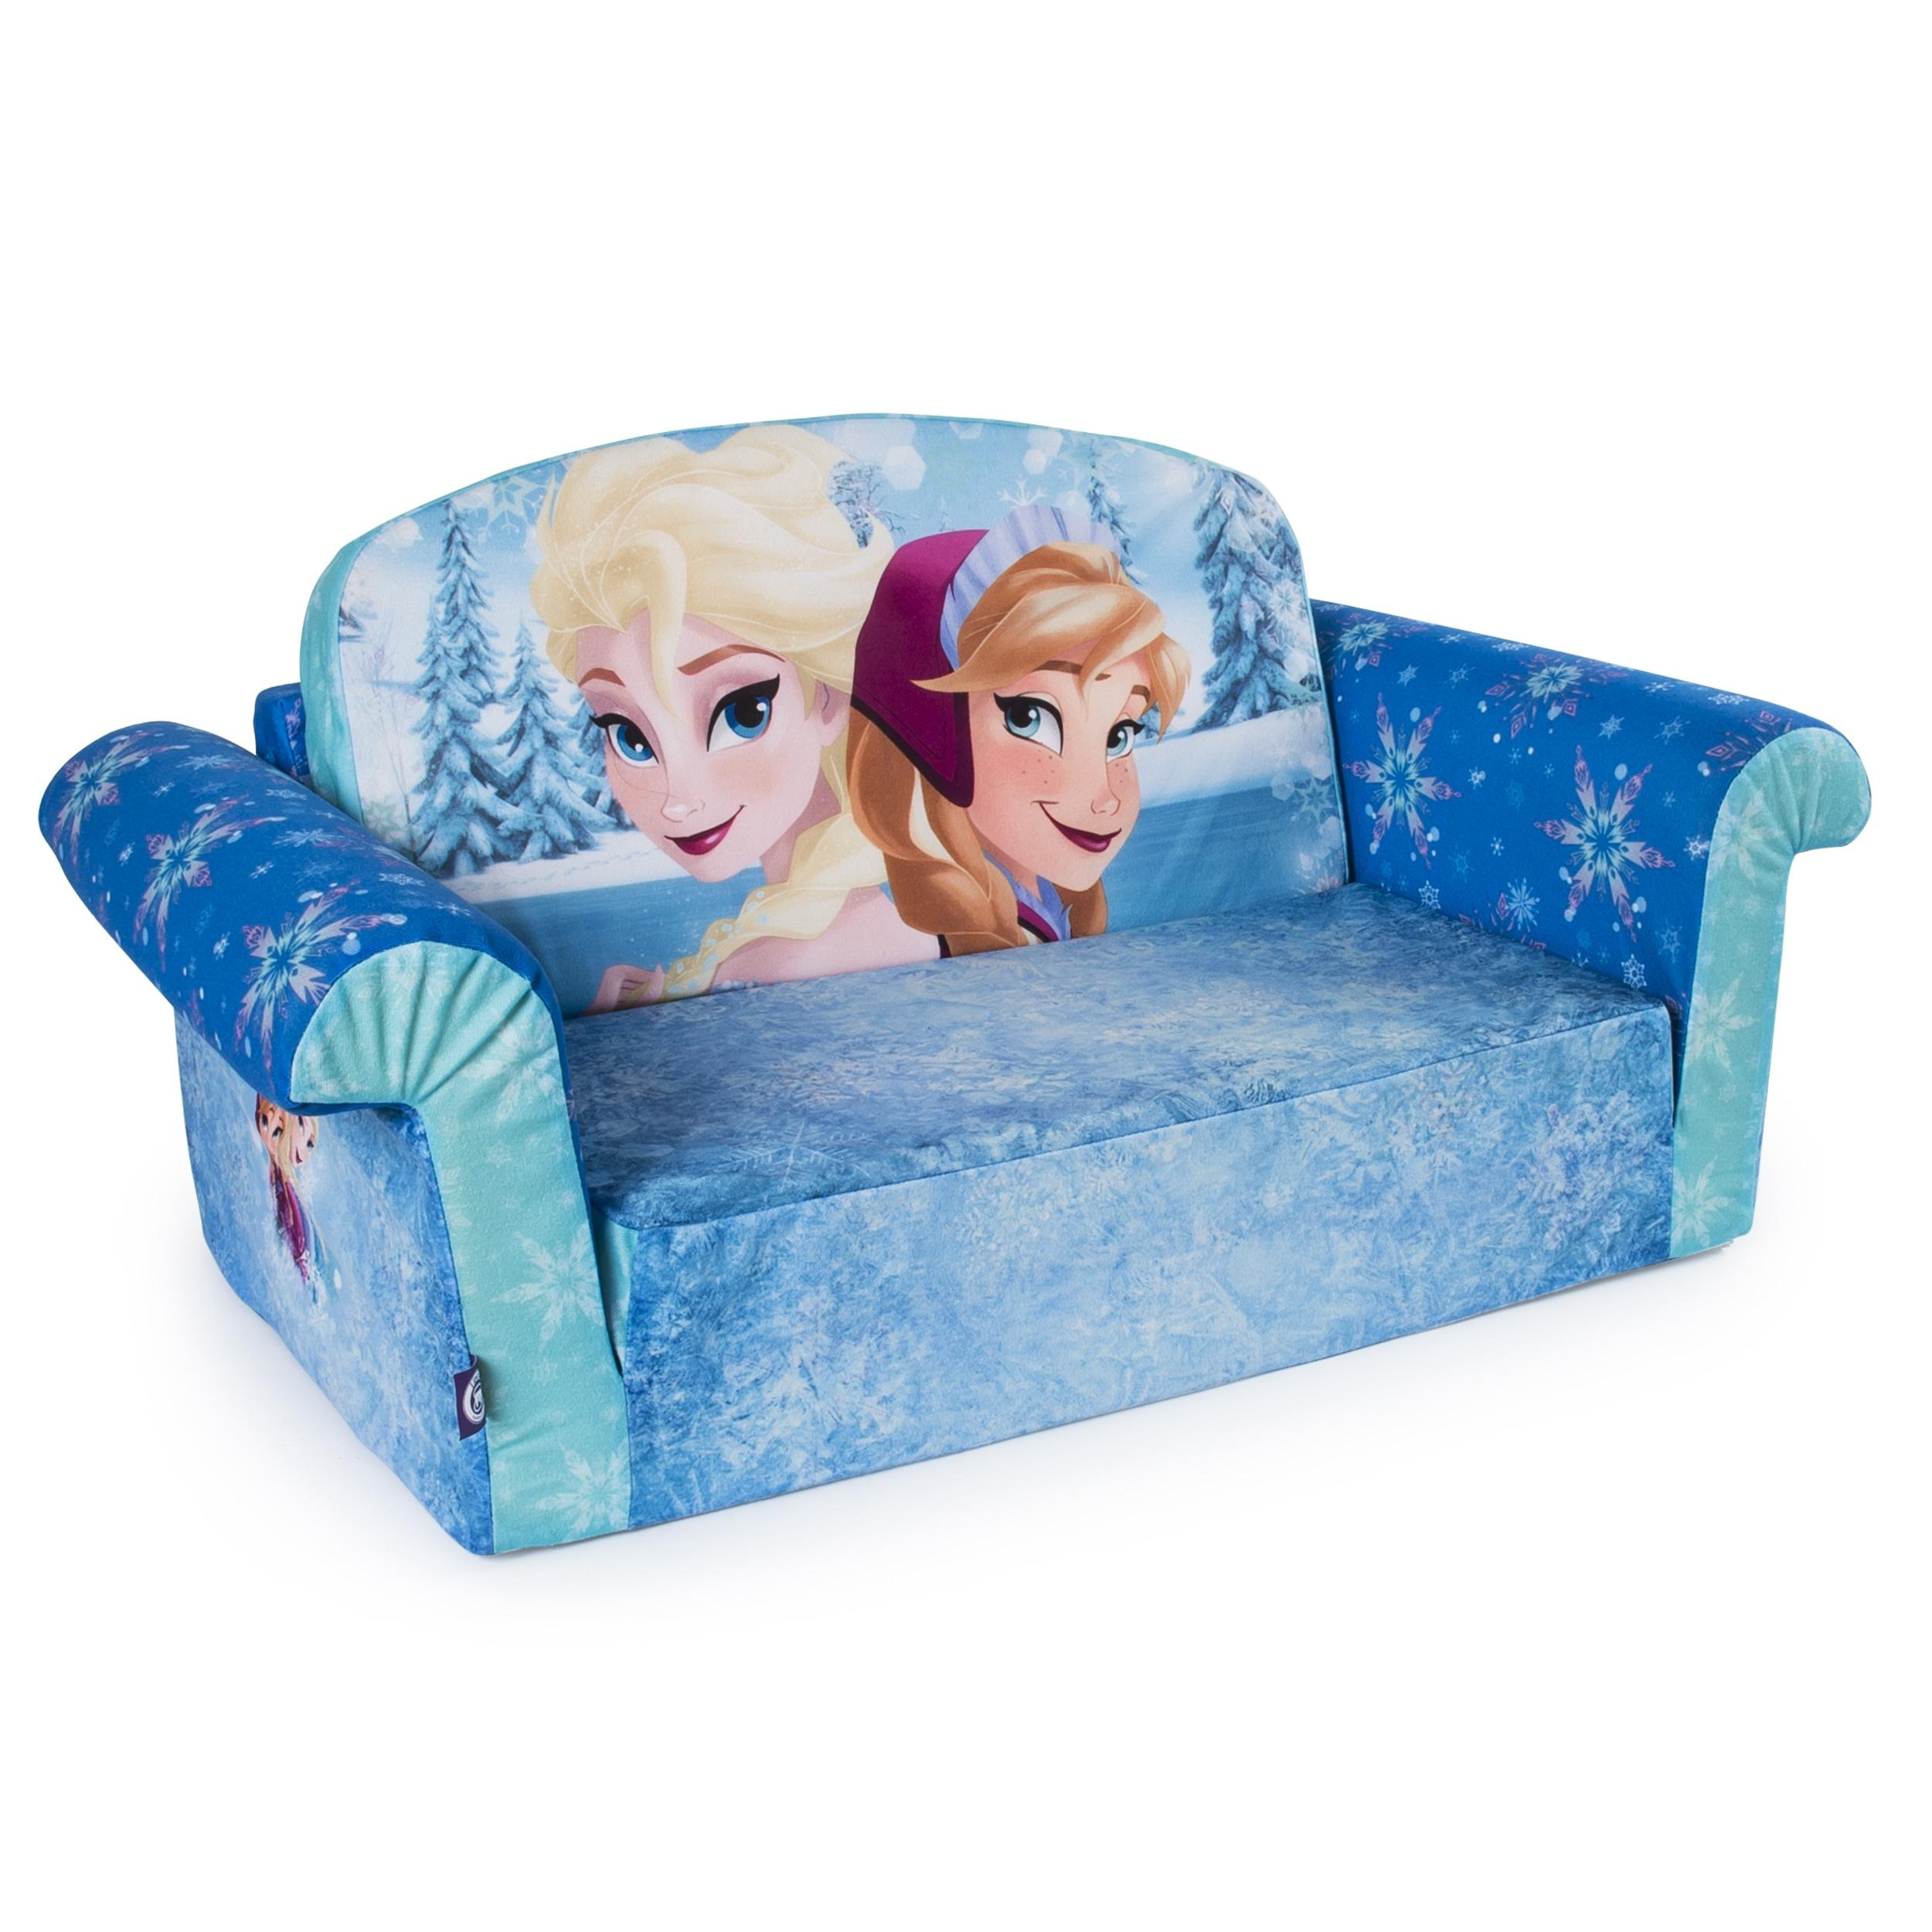 Marshmallow Furniture, Children's 2 In 1 Flip Open Foam Sofa Inside Disney Sofa Chairs (Image 12 of 20)